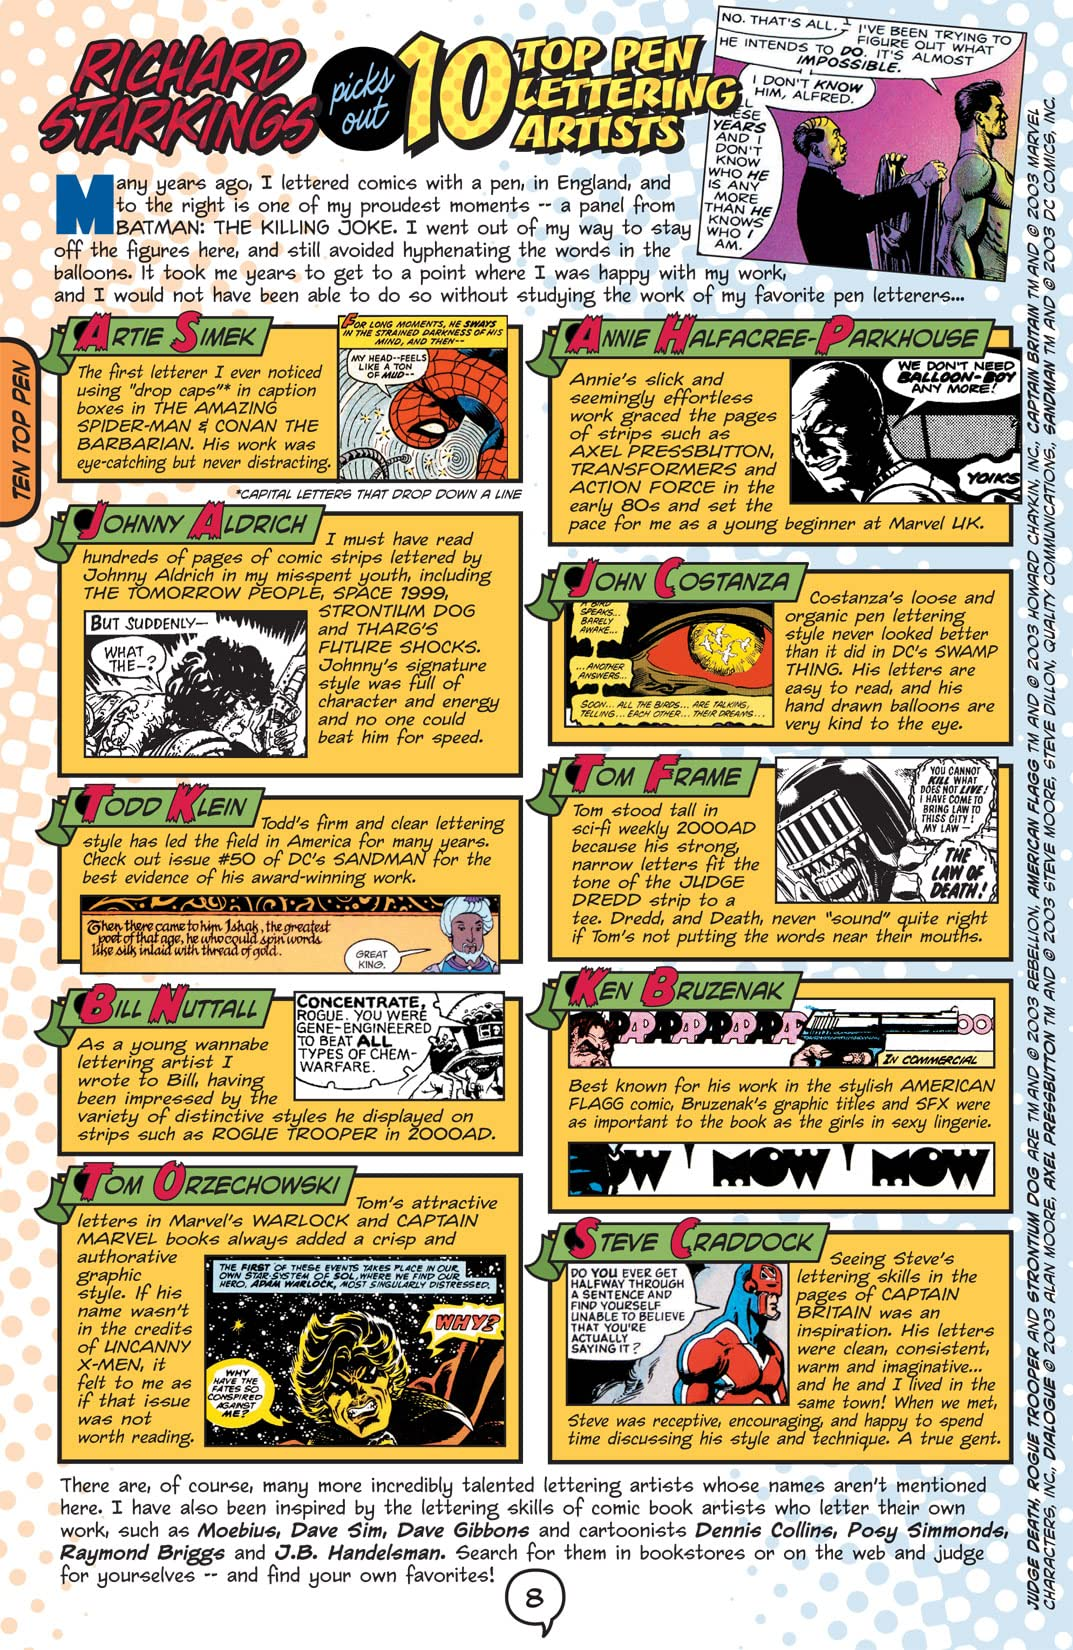 Comic Book Lettering The Comicraft Way